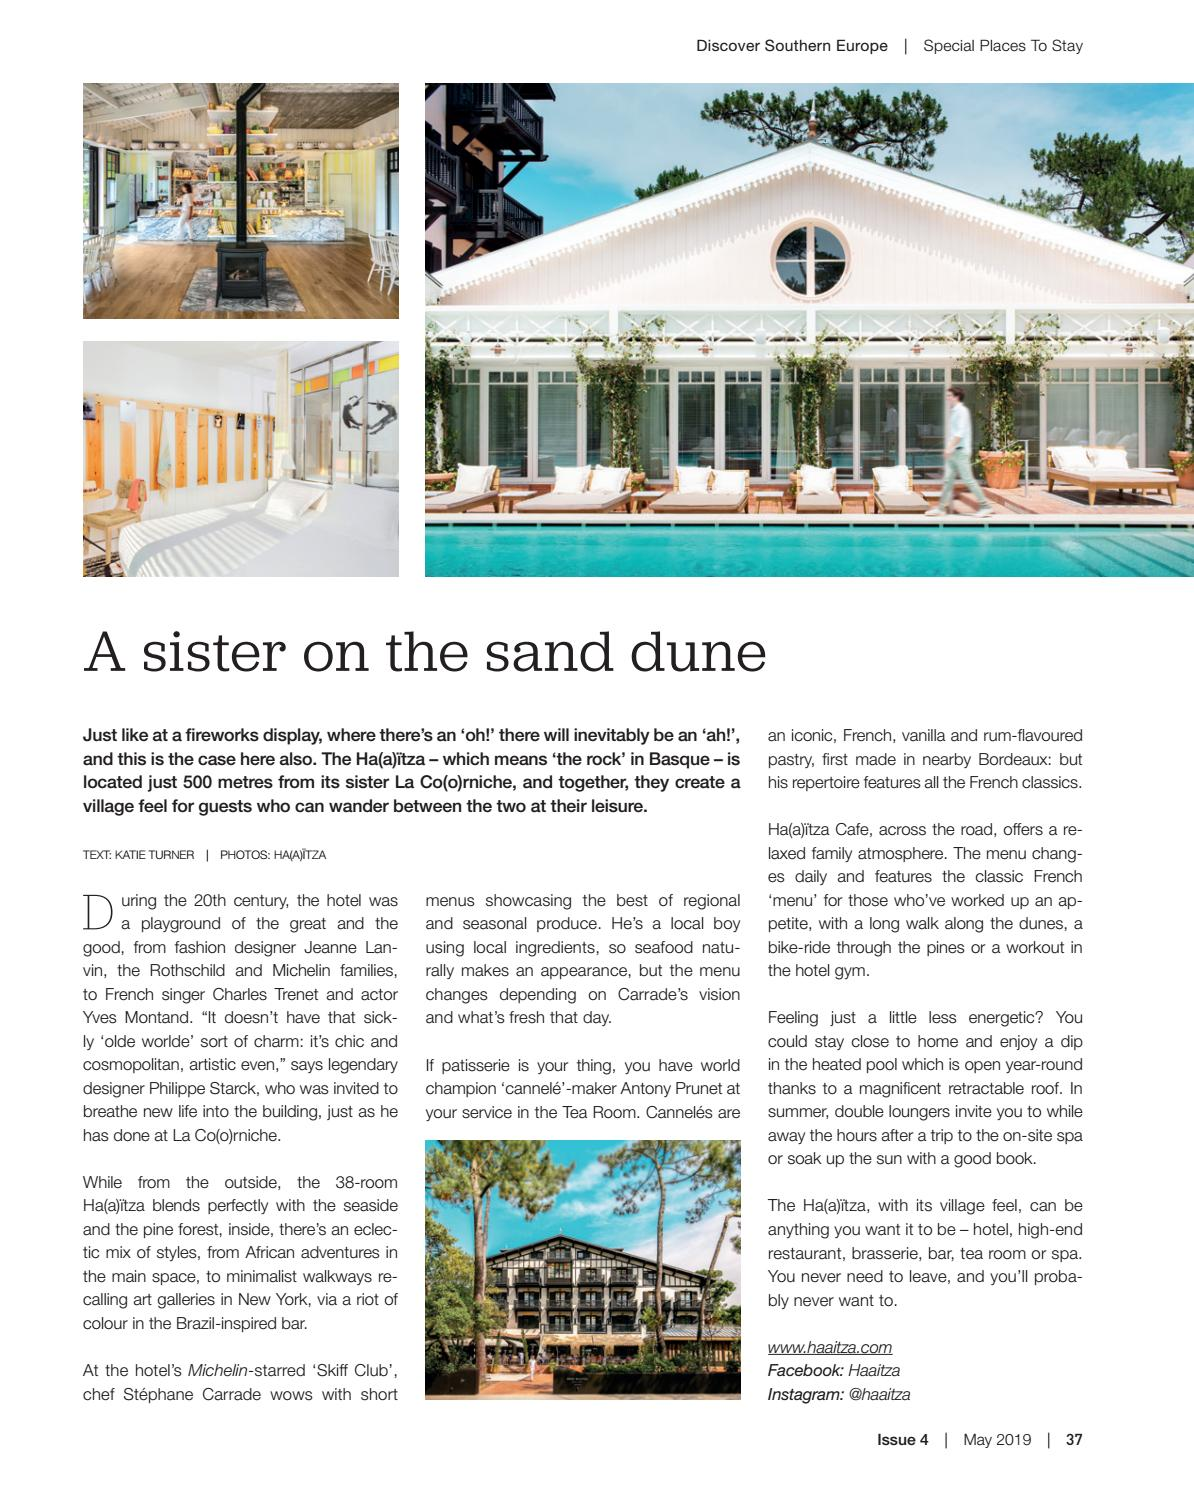 Discover Southern Europe, Issue 4, May 2019 by Scan Group